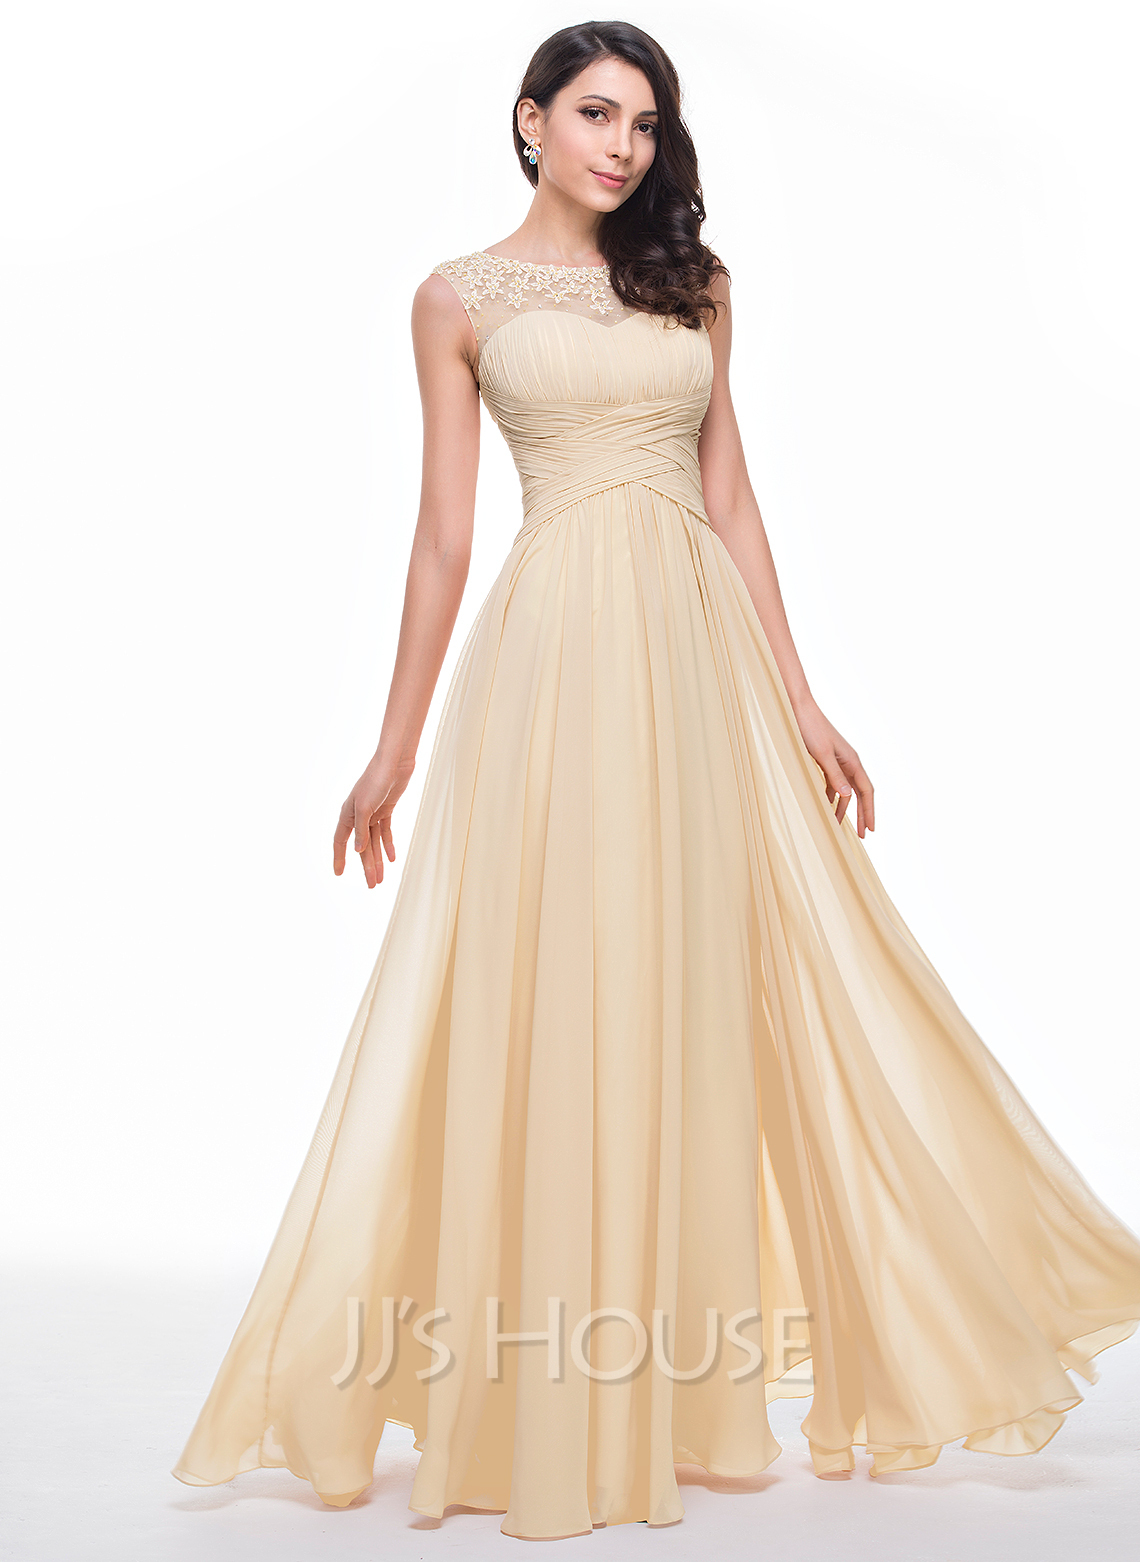 c4efd81254c A-Line Princess Scoop Neck Floor-Length Chiffon Prom Dresses With Ruffle  Beading. Loading zoom